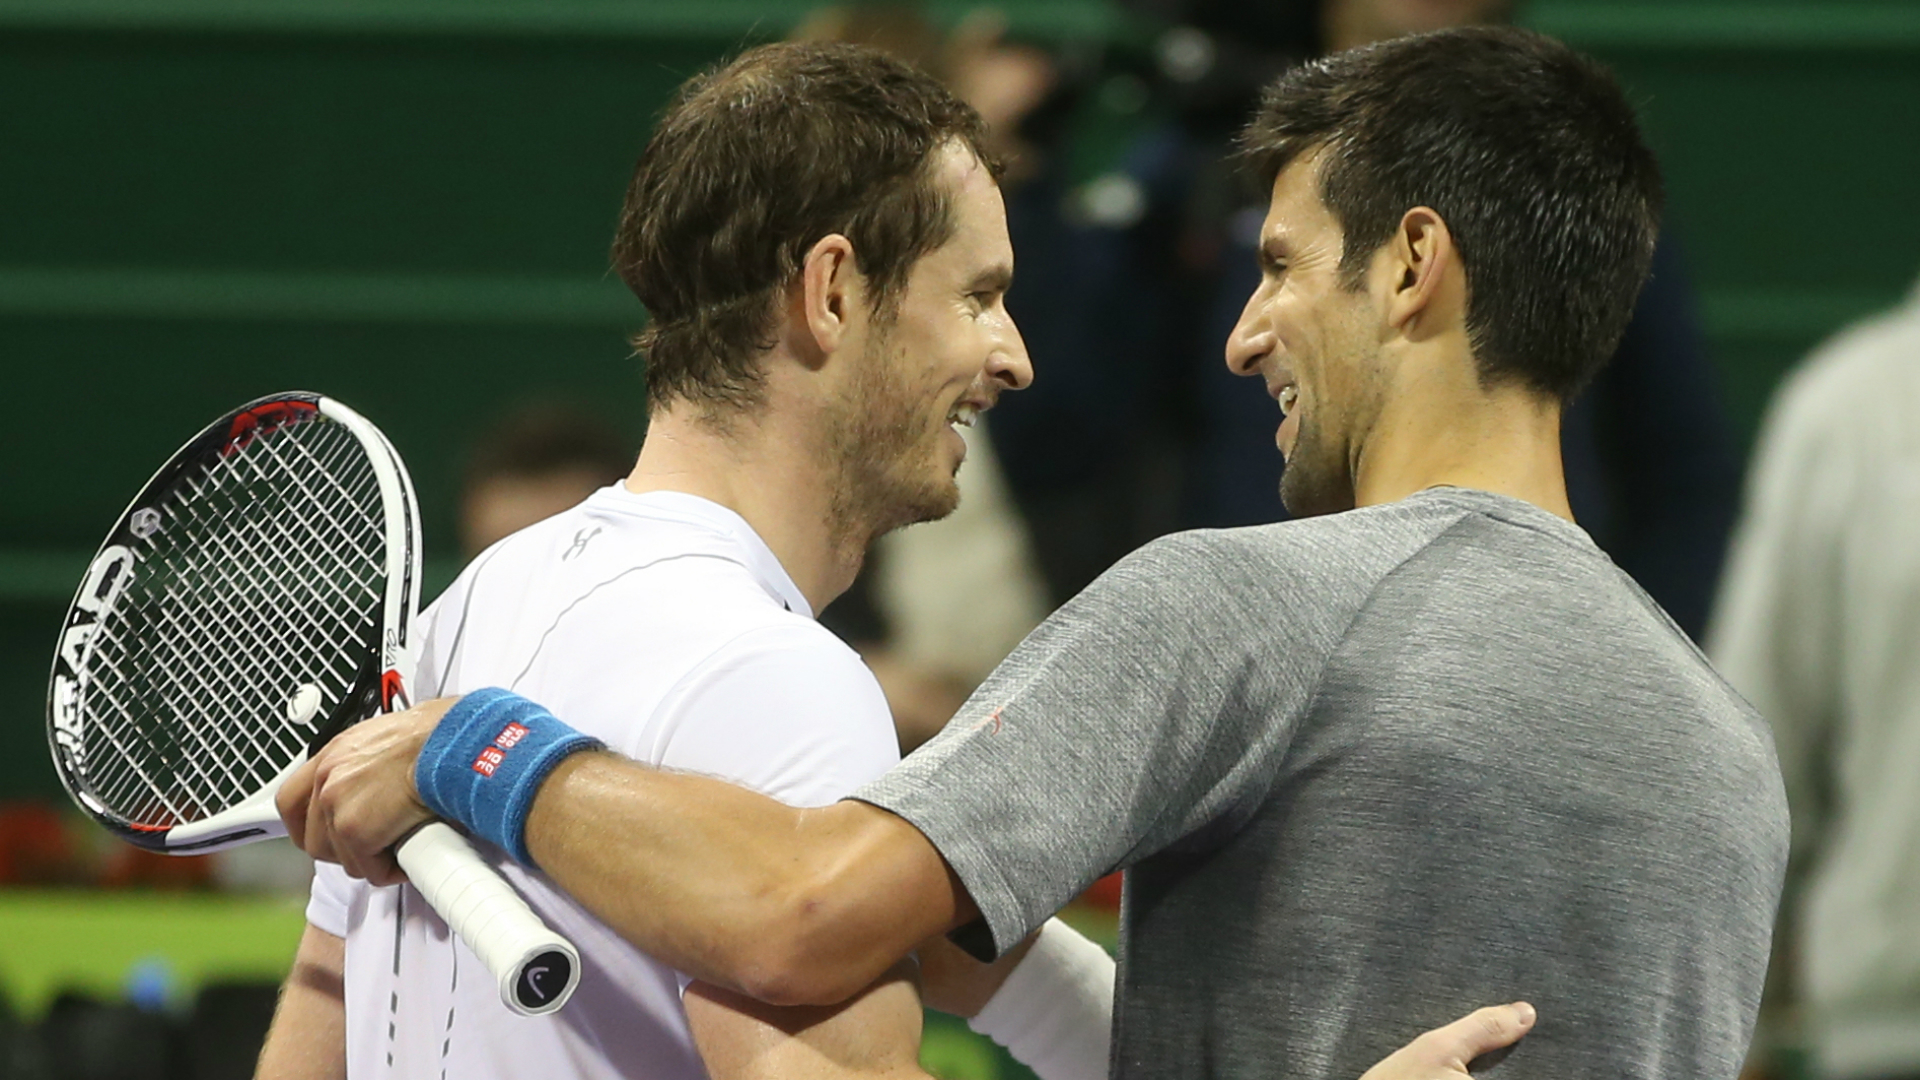 Australian Open 2019: Novak Djokovic hails 'brave' Andy Murray as retirement looms